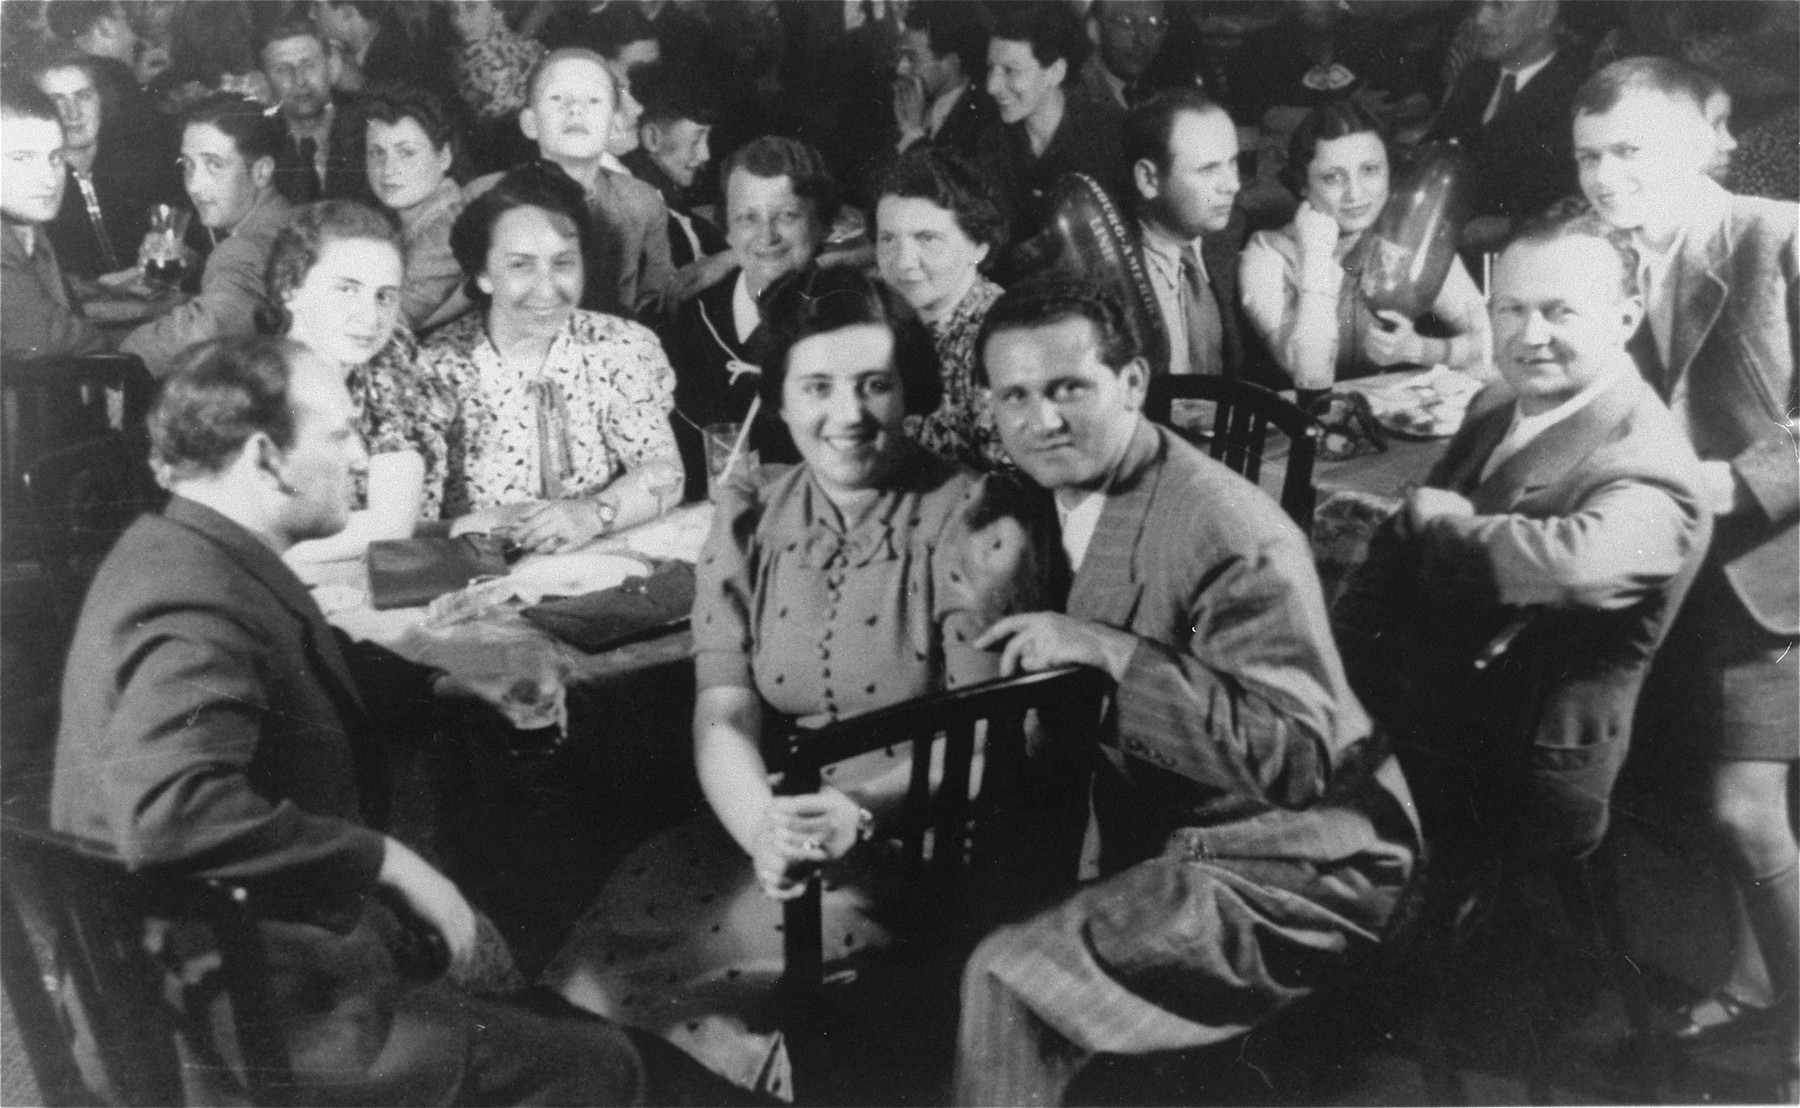 Passengers in the dining room of the MS St. Louis.    Pictured are Walter Weisler, Ursula Spitz, Erna Ring, Herbert Karliner, Margareth and Heinrich Glucksmann, Vera Spitz, Alfred and Sophie Aron, Walter Karliner and Erich Ring.